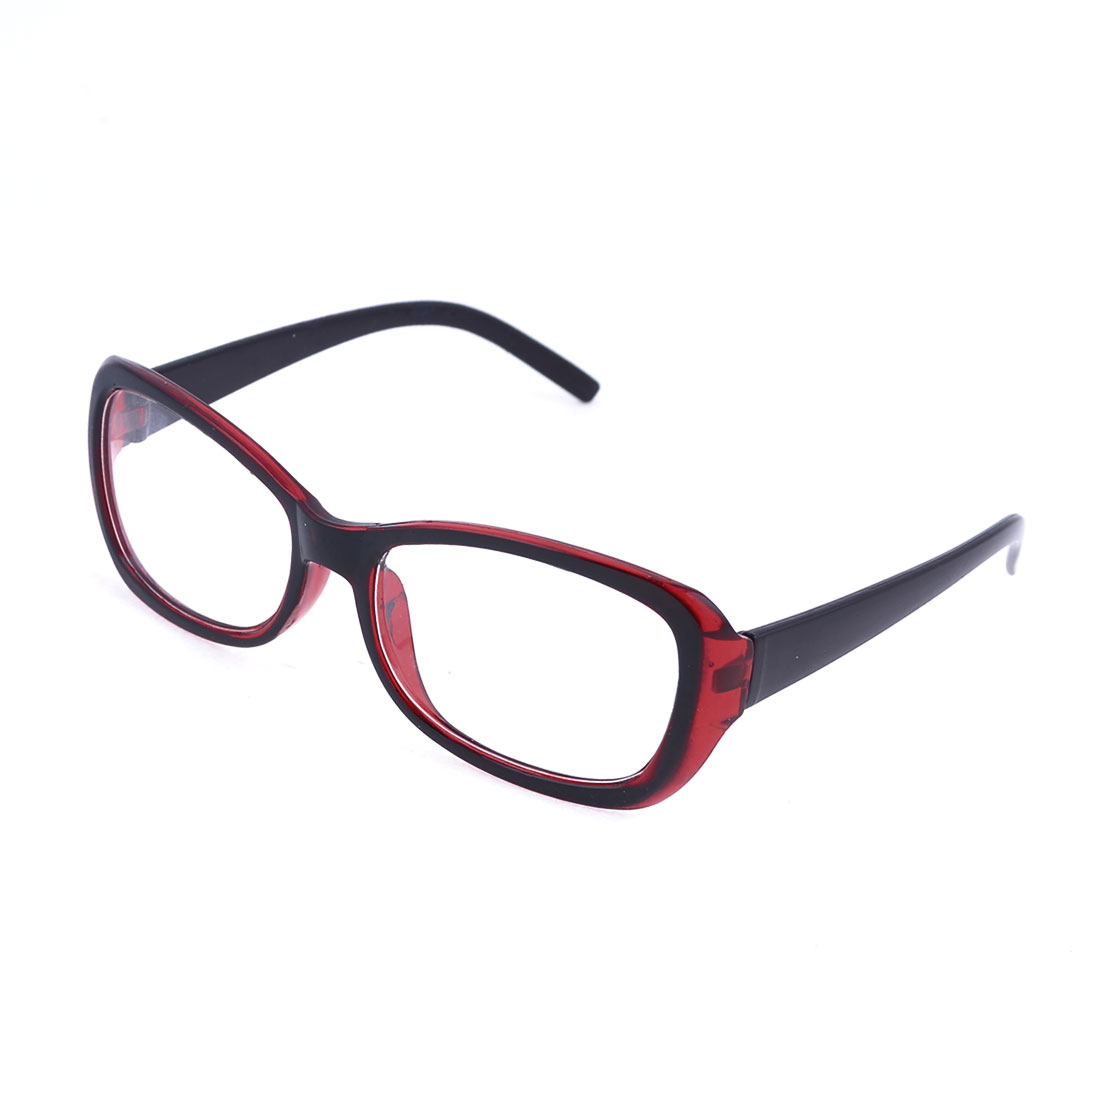 Women Red Black Plastic Full Rim Rectangular Clear Lens Plain Glasses